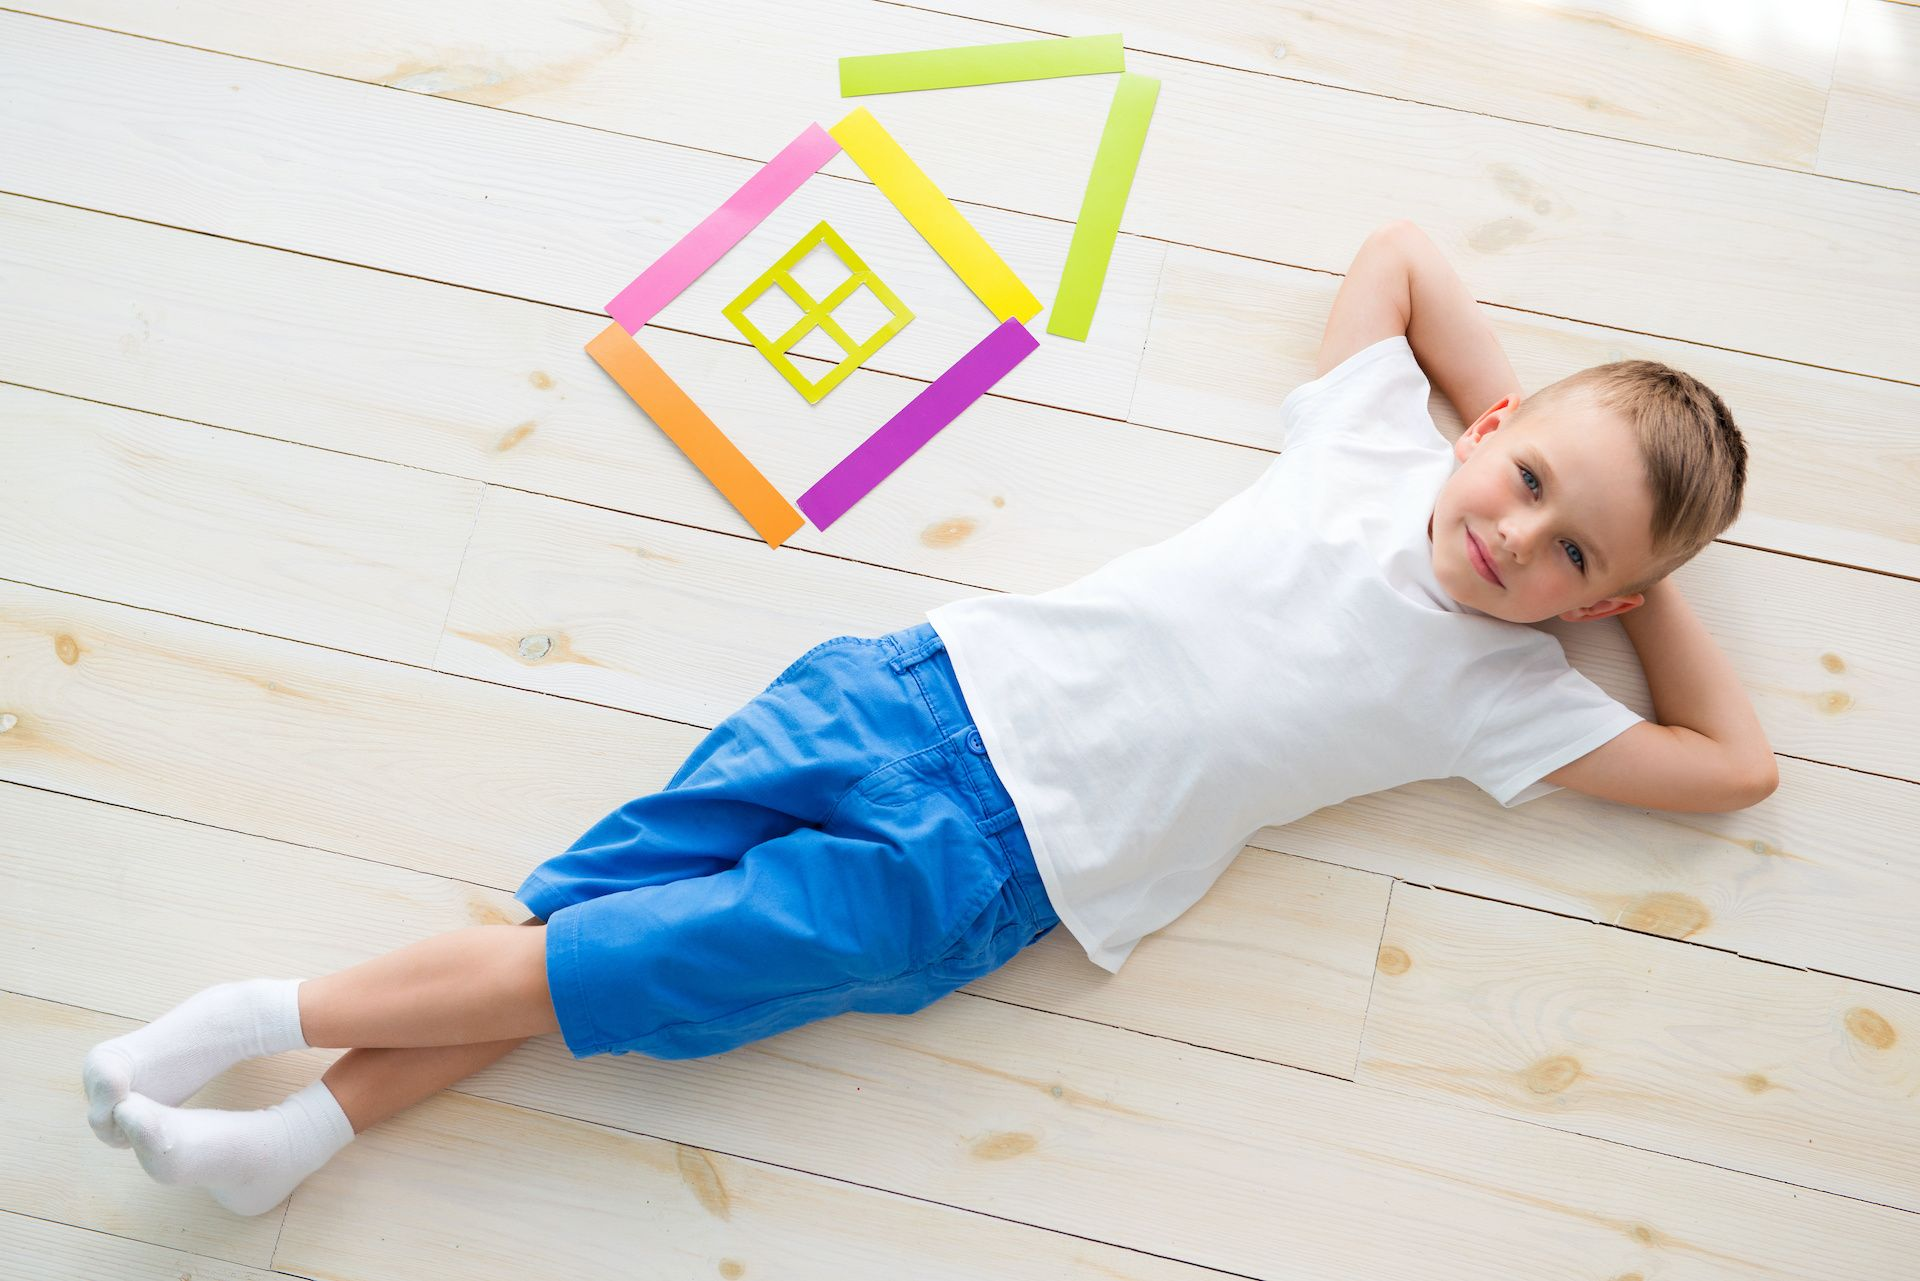 little boy lies on the floor next to a house of colored paper